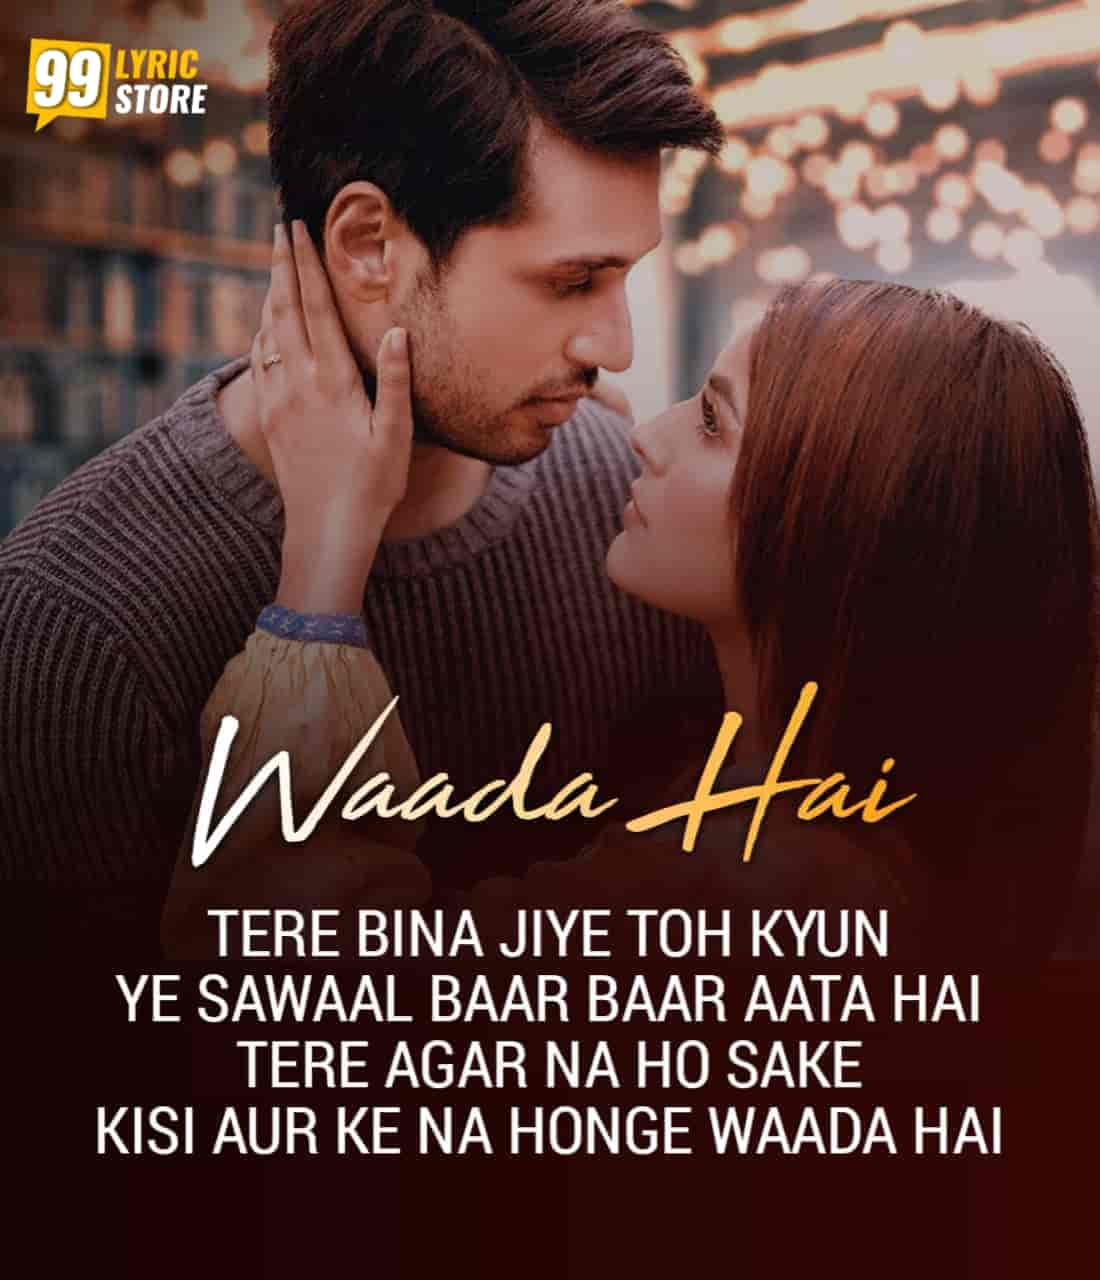 A very beautiful most awaited love hindi song Waada Hai has finally released which is sung in the melodious voice of Arjun Kanungo.